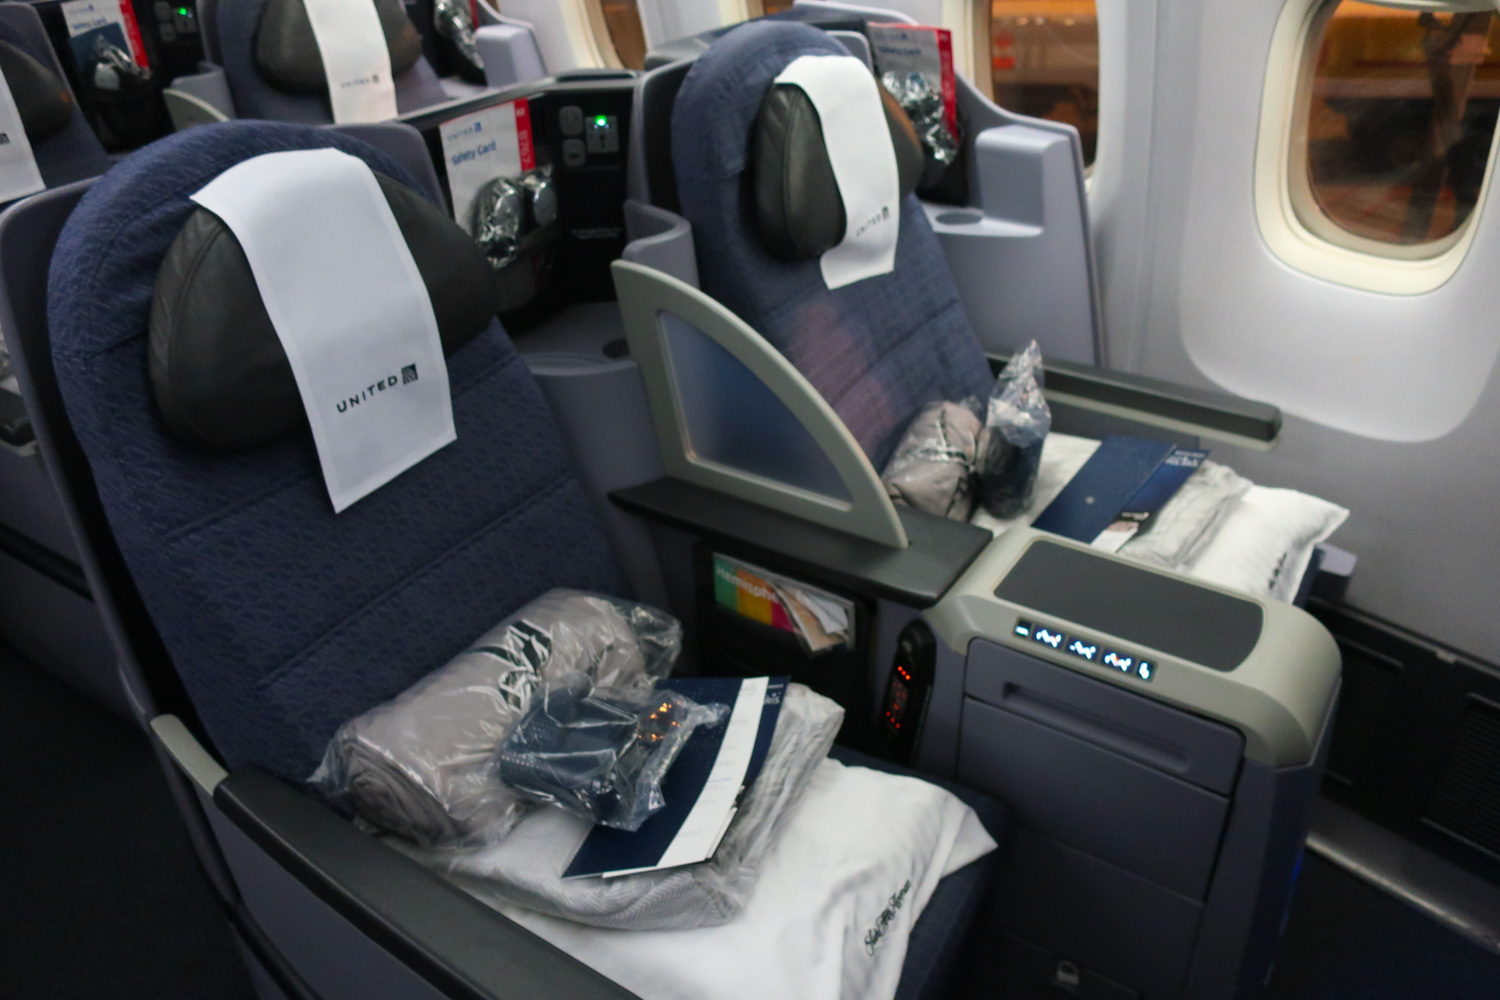 United Airlines Polaris Business Class - Boeing 767-400